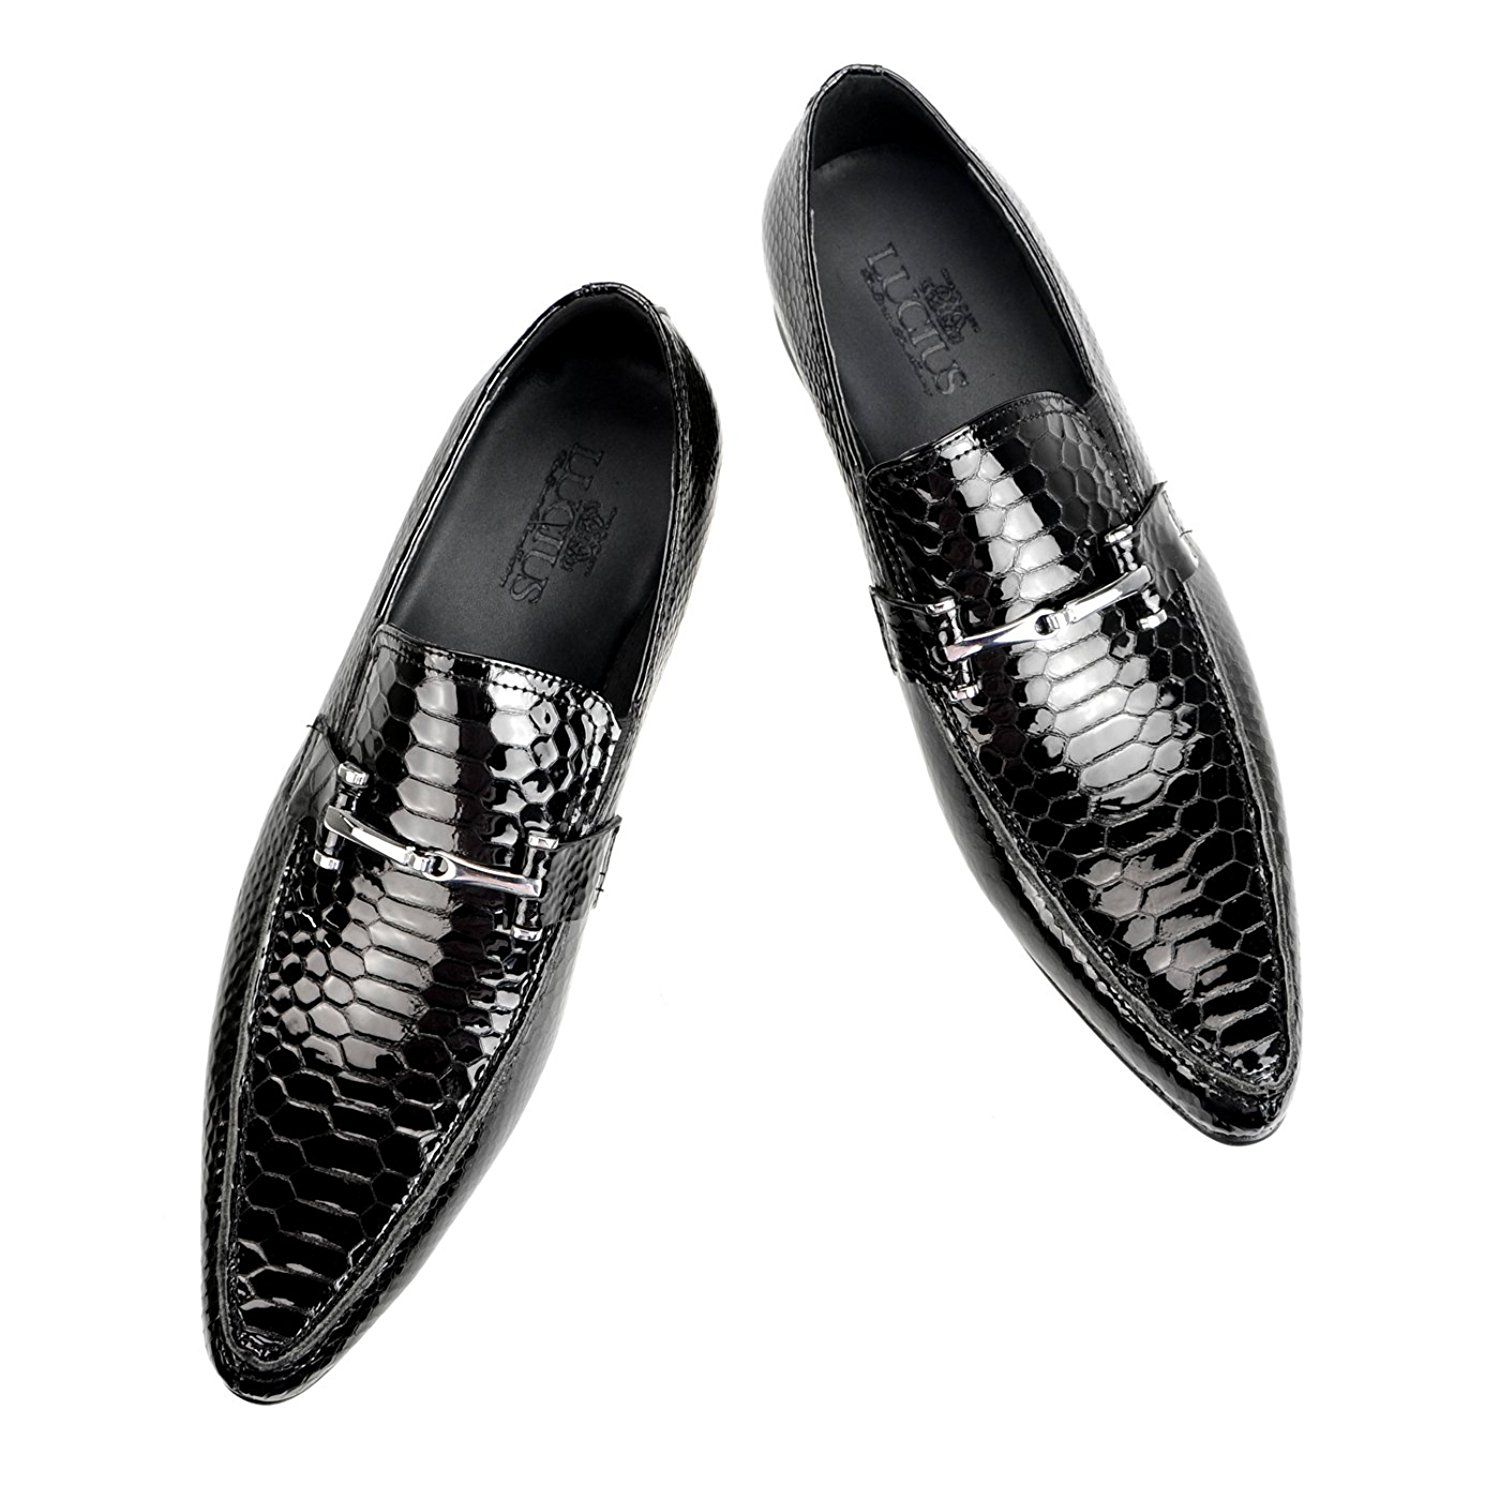 Lucius Leather Dress Shoes Lizard Embossing Bit Loafers Slip-on Opera Shoes Shoes Oxford Pointed Toe Men's Driving Shoes Deck Shoes Espadrille Wedge Low-Top Sneaker Black,44 EU (US Men's 10.5 M)